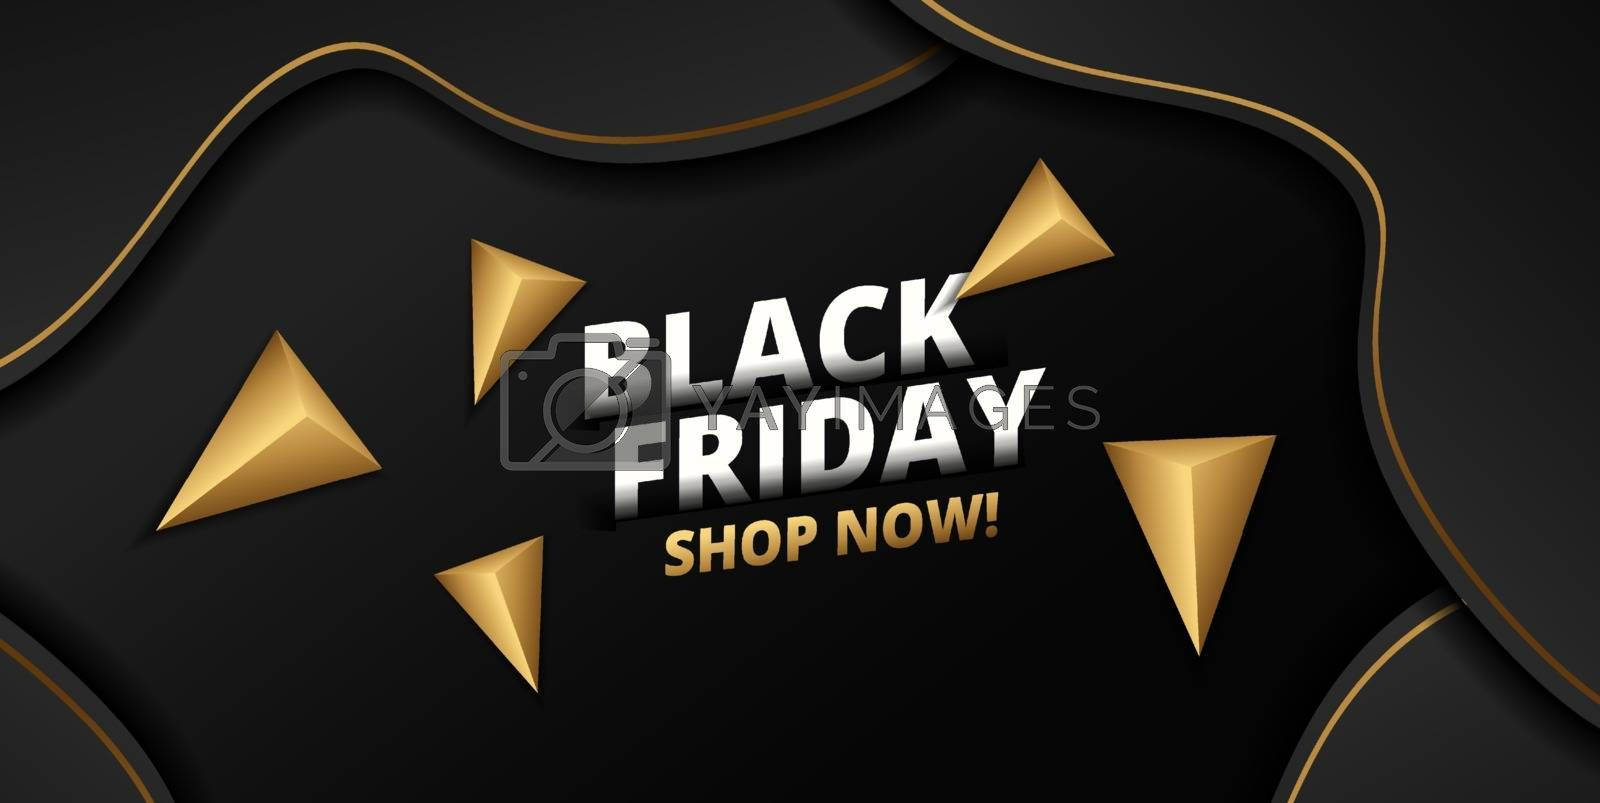 Black friday lettering, gold triangle around on black background. Can be used as poster or template design.